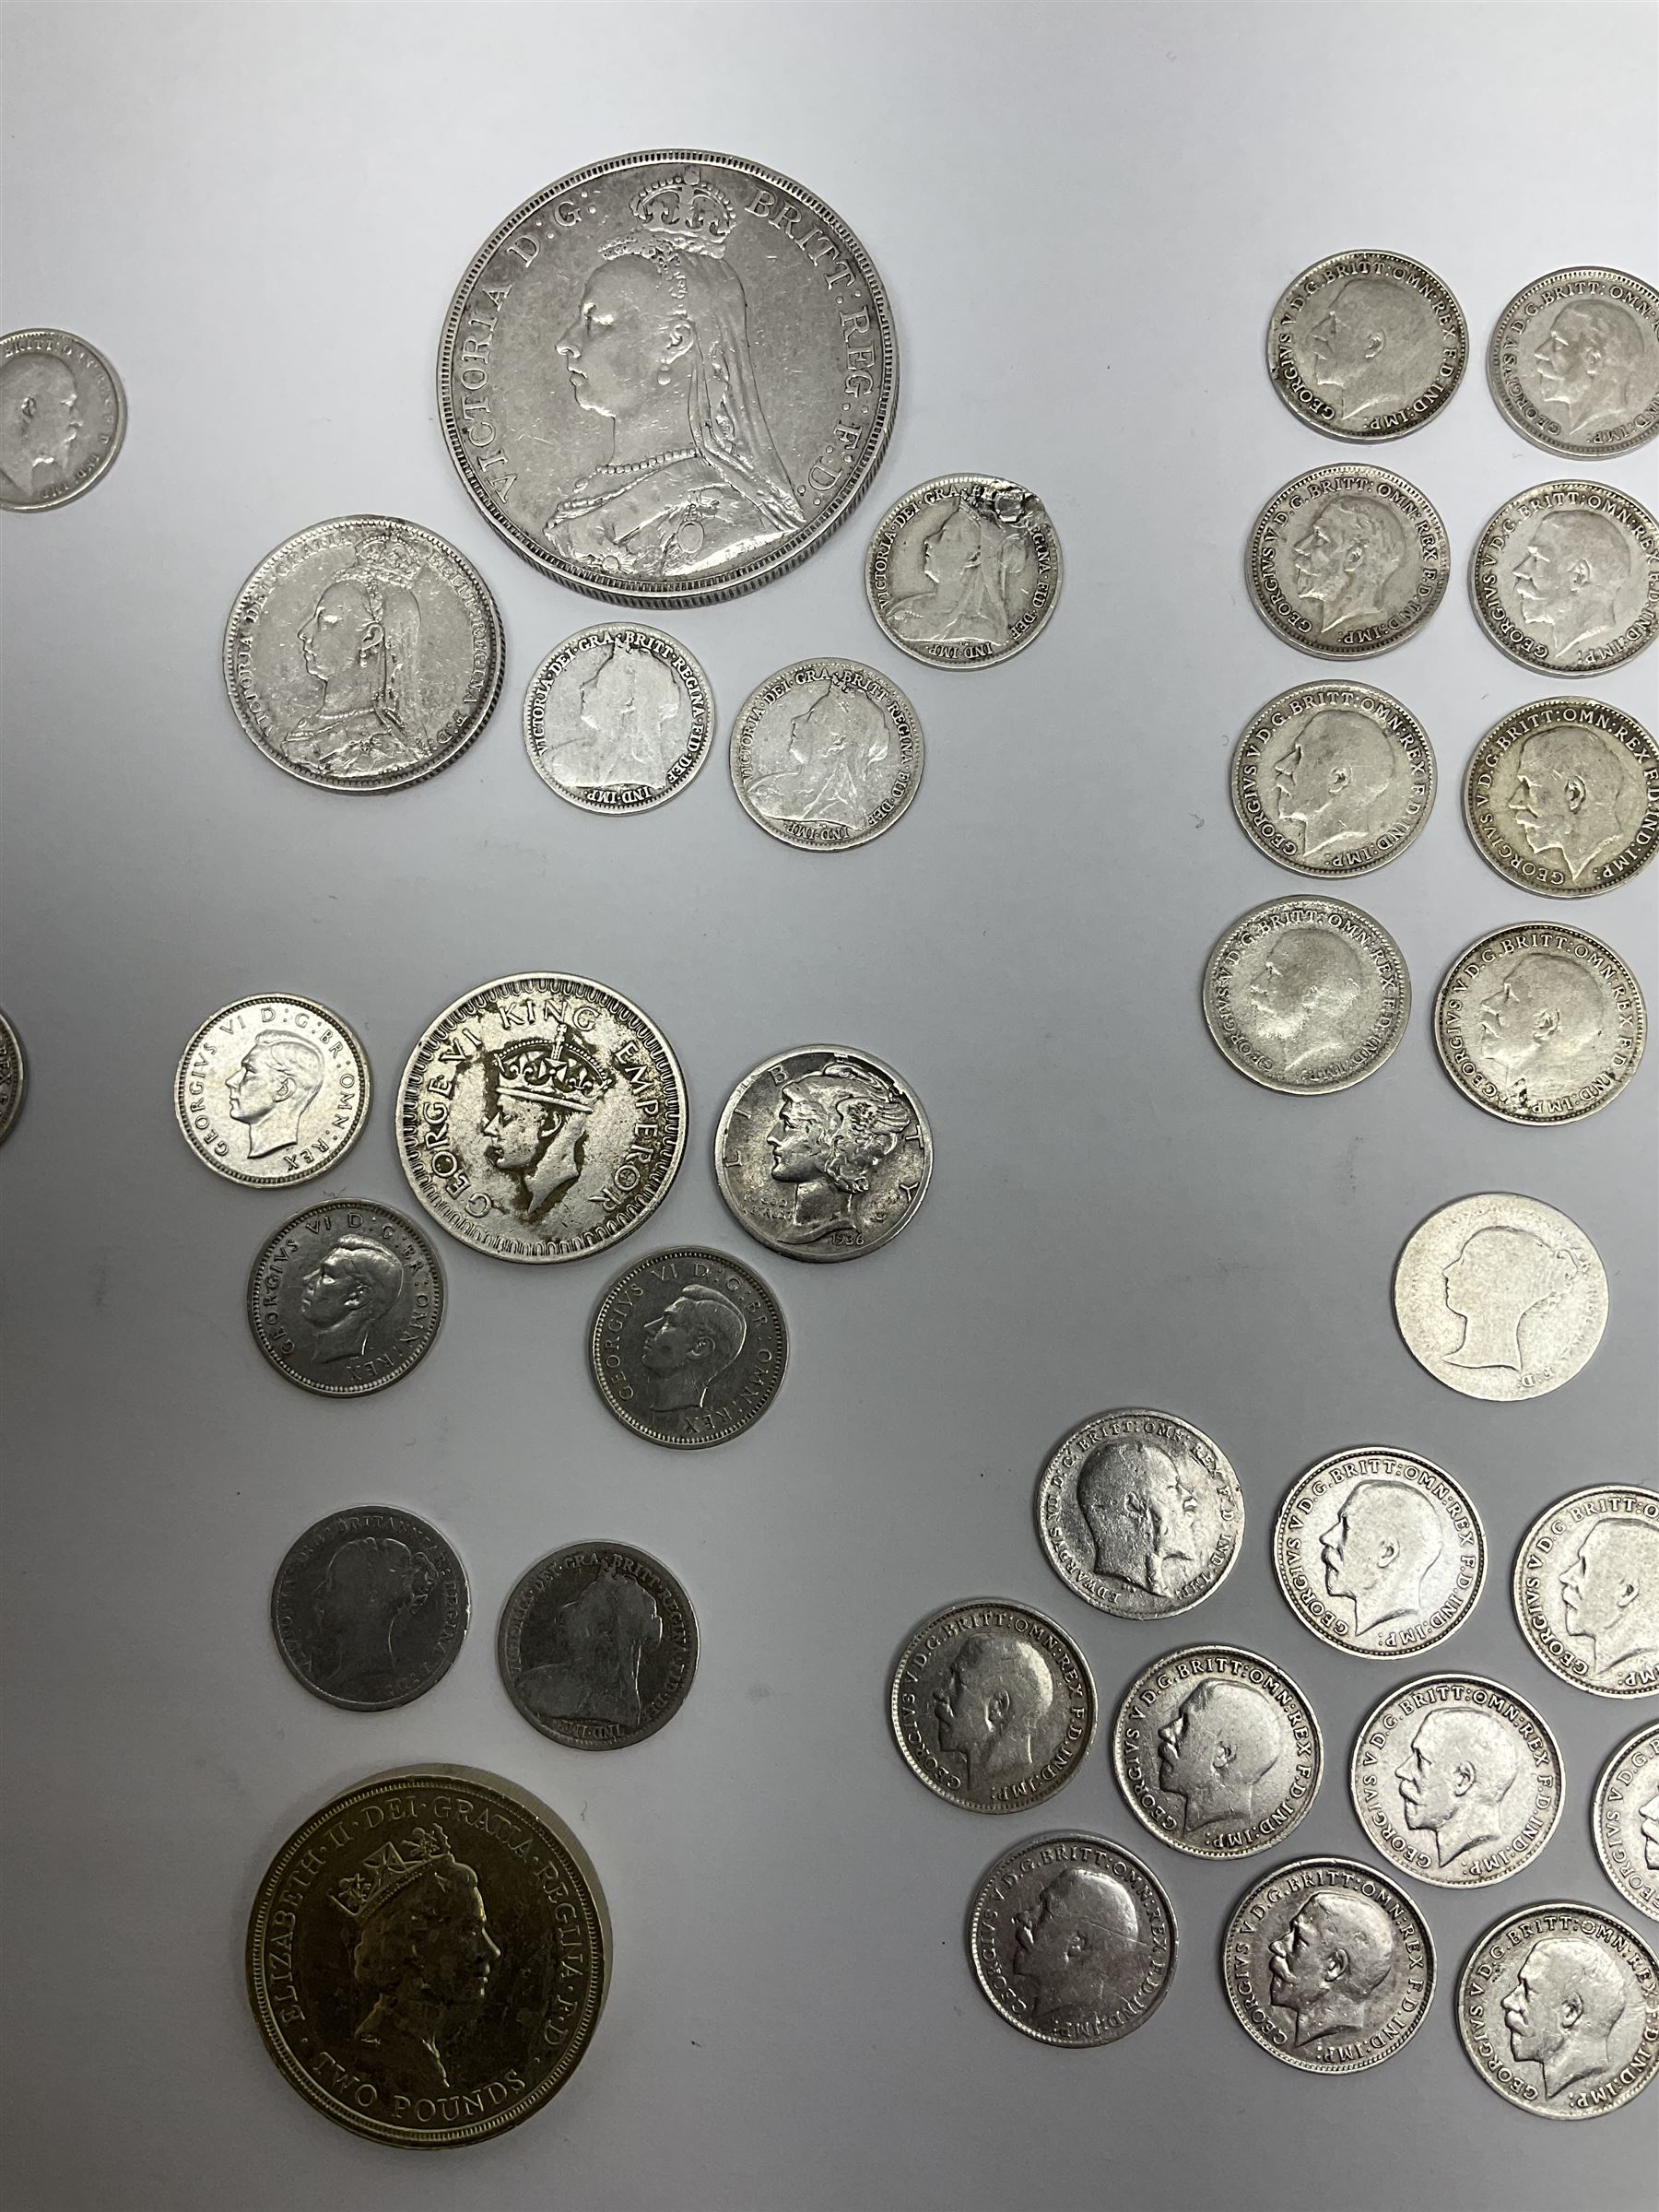 Mostly Great British coins including Queen Victoria 1890 crown and 1890 shilling - Image 3 of 4